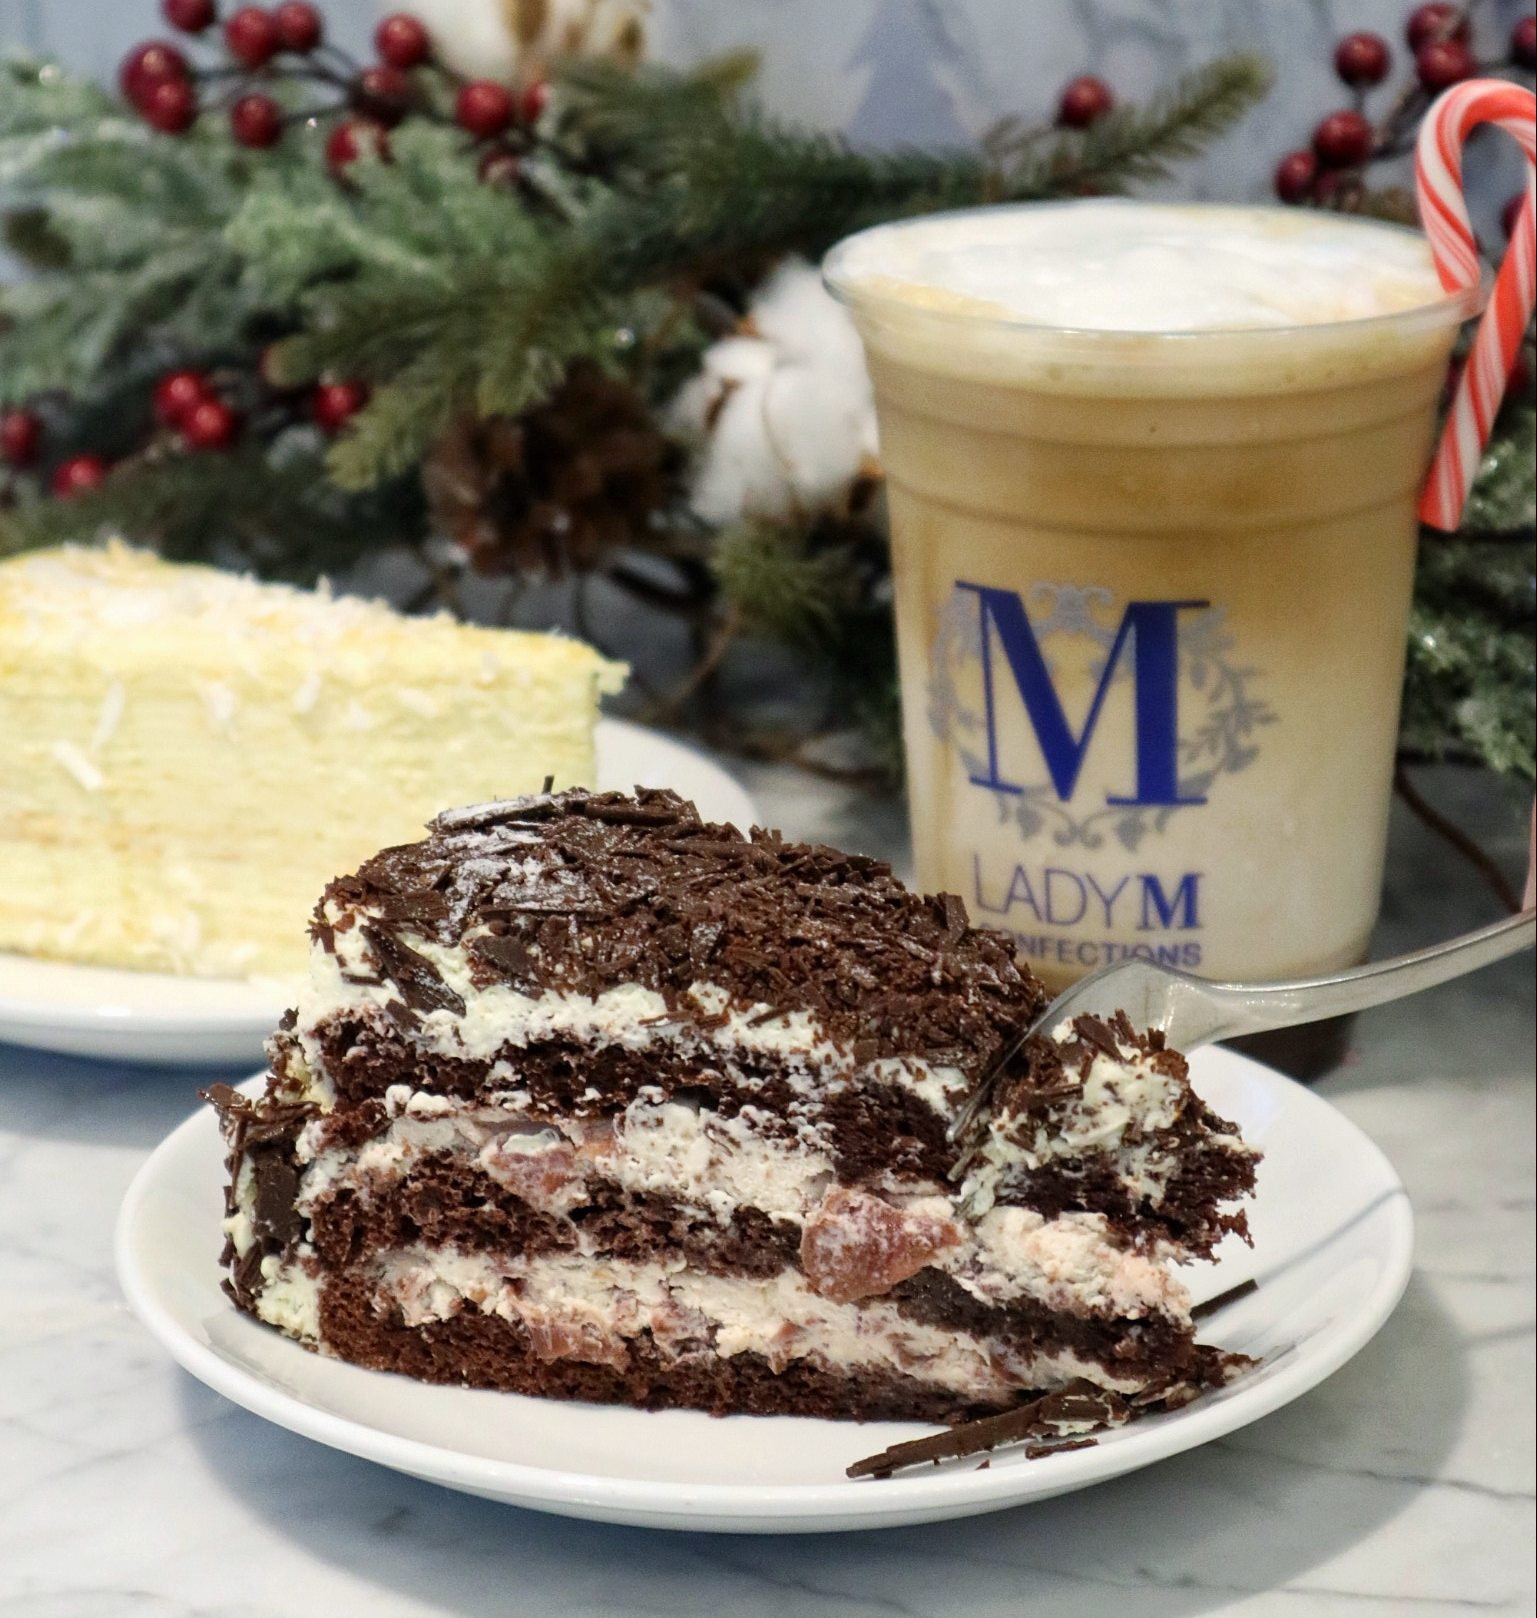 Lady M Singapore: New Christmas Special Black Forest Cake & Peppermint Mocha